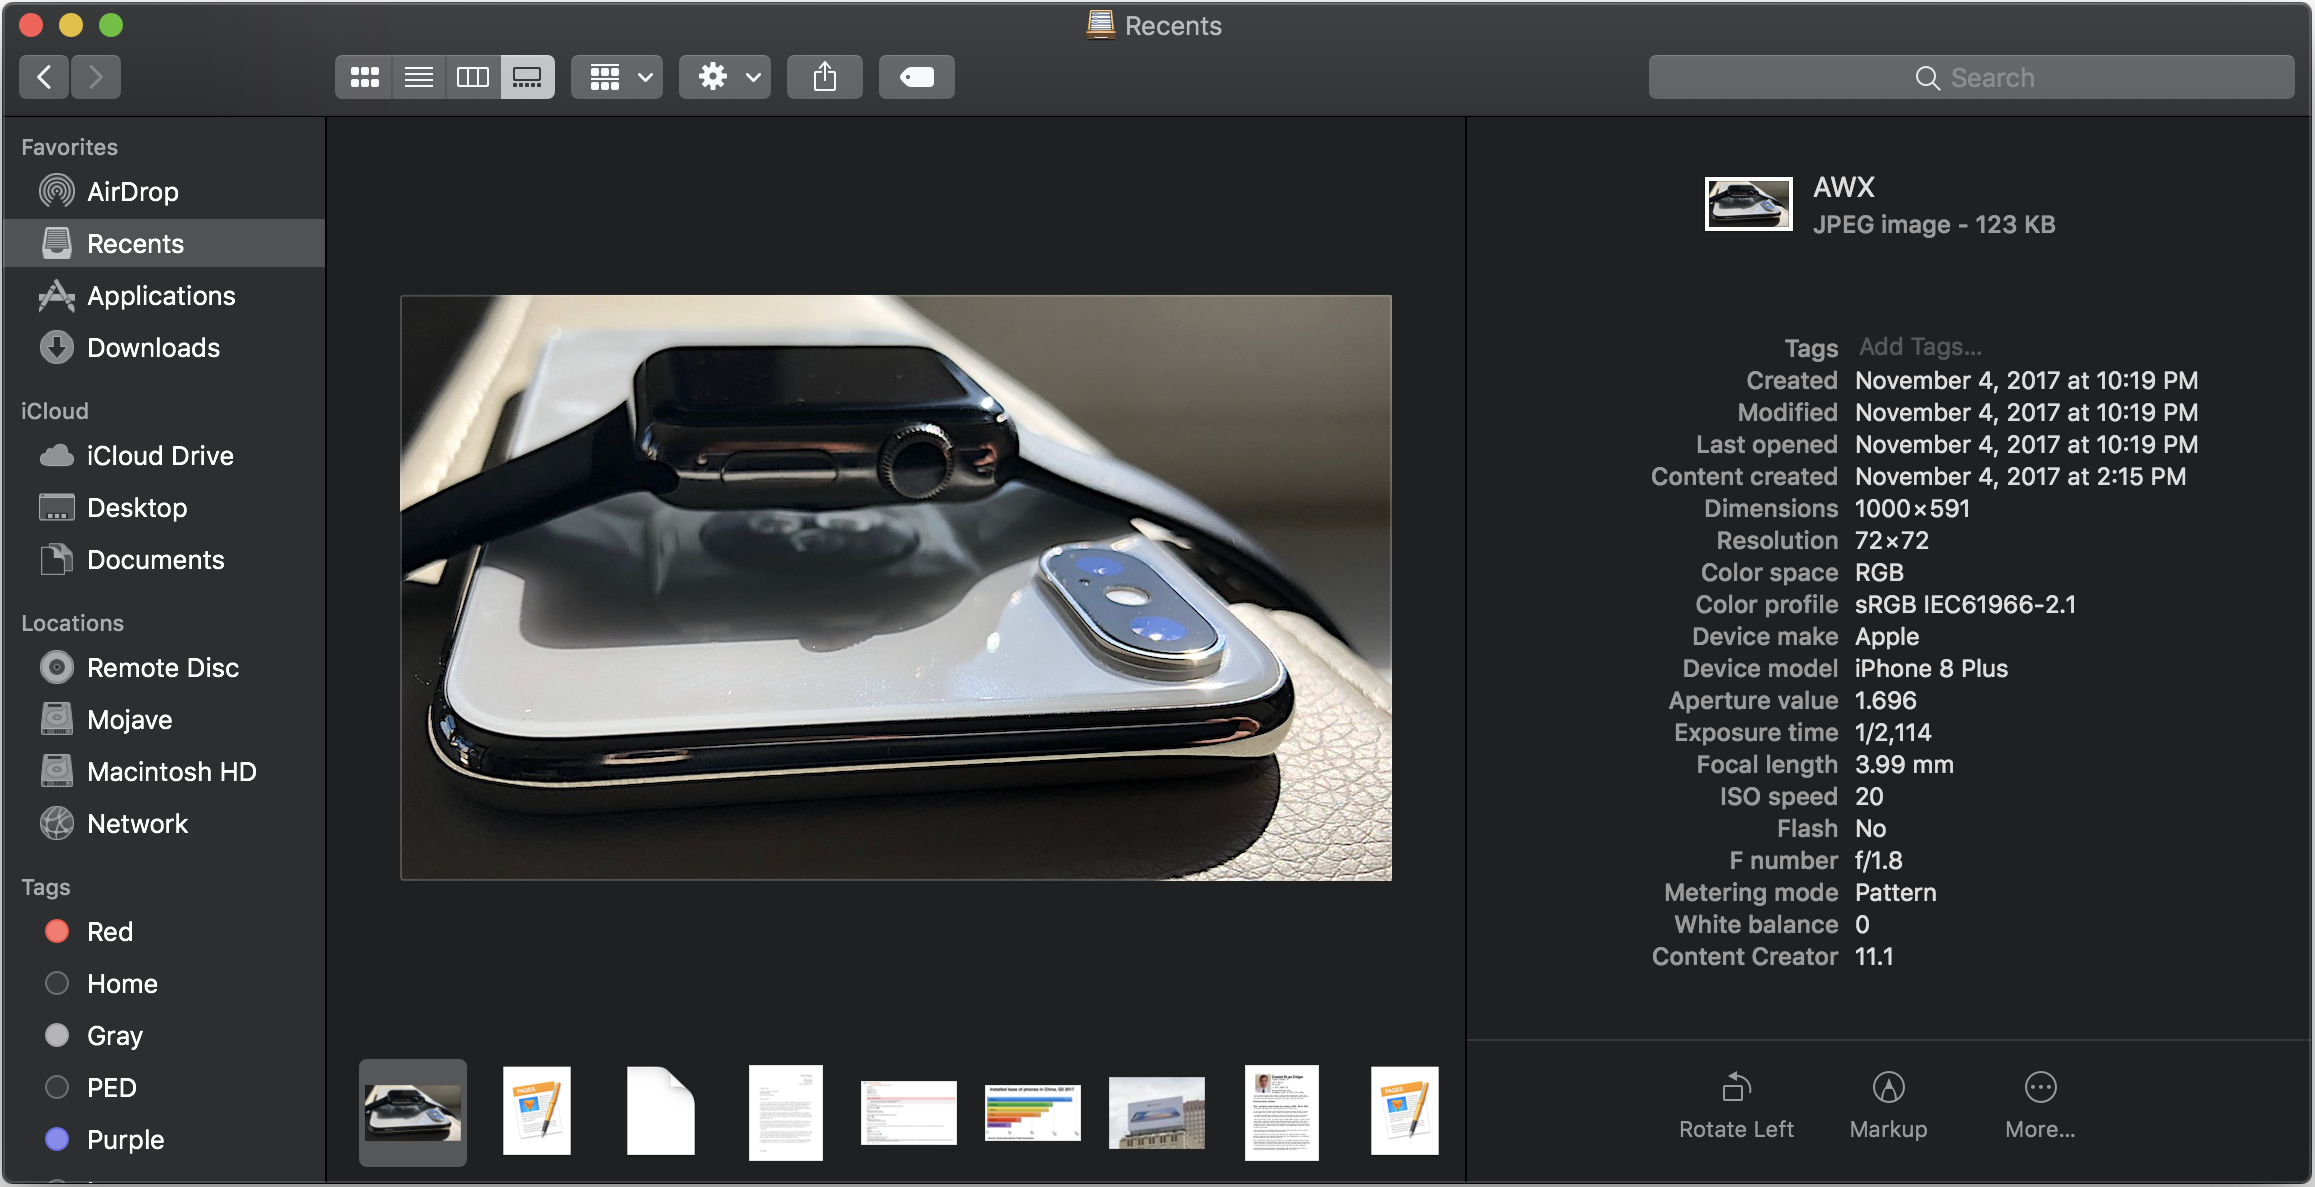 The Finder's enhanced Preview pane in Gallery view presents more technical metadata, and Quick Action buttons.